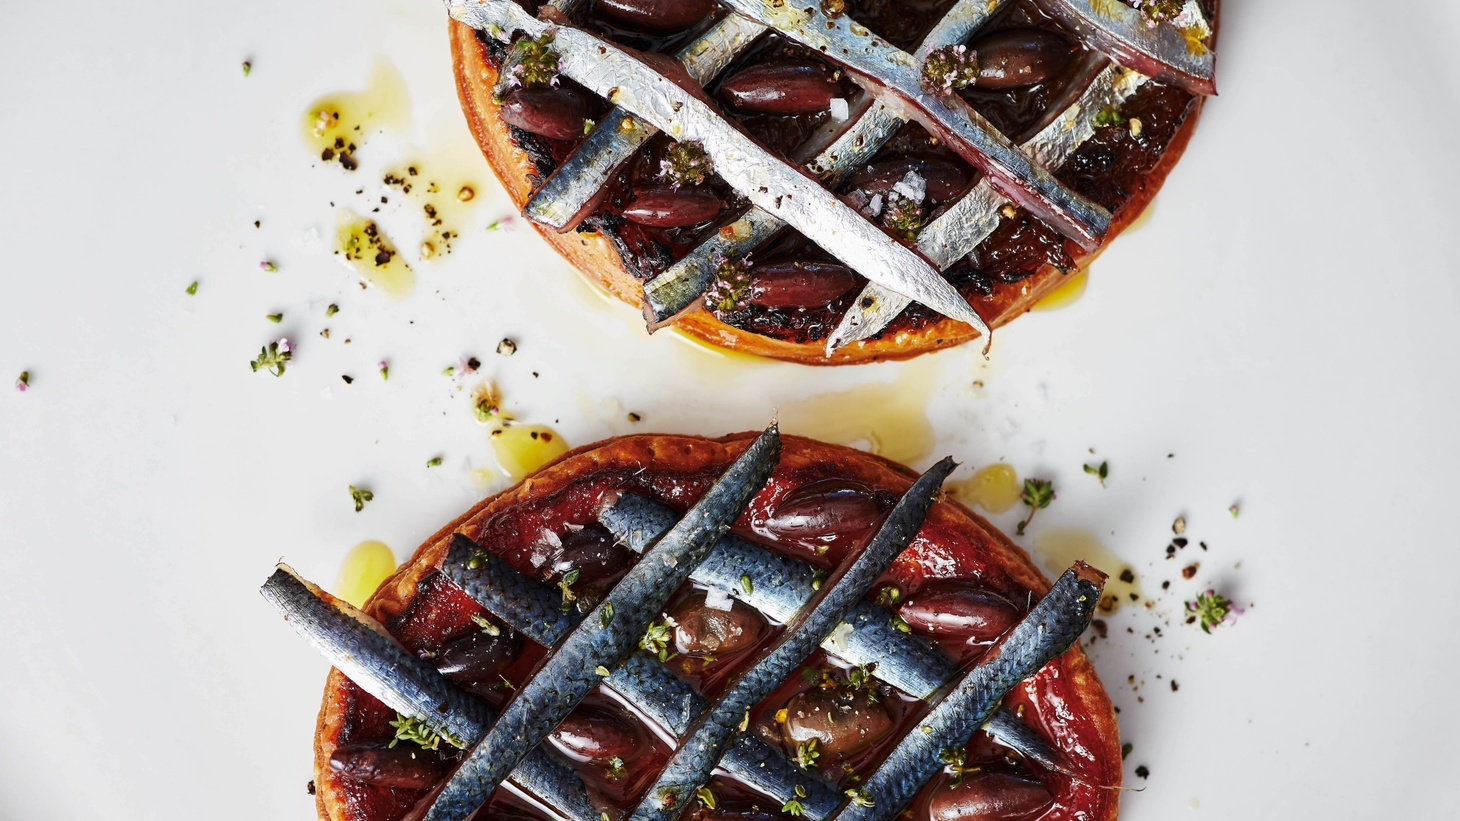 Josh Niland uses his experience working in a French restaurant in Sydney to create a pissaladiere in which he substitutes latticed sardines for anchovies to tame the salf-forward dish.